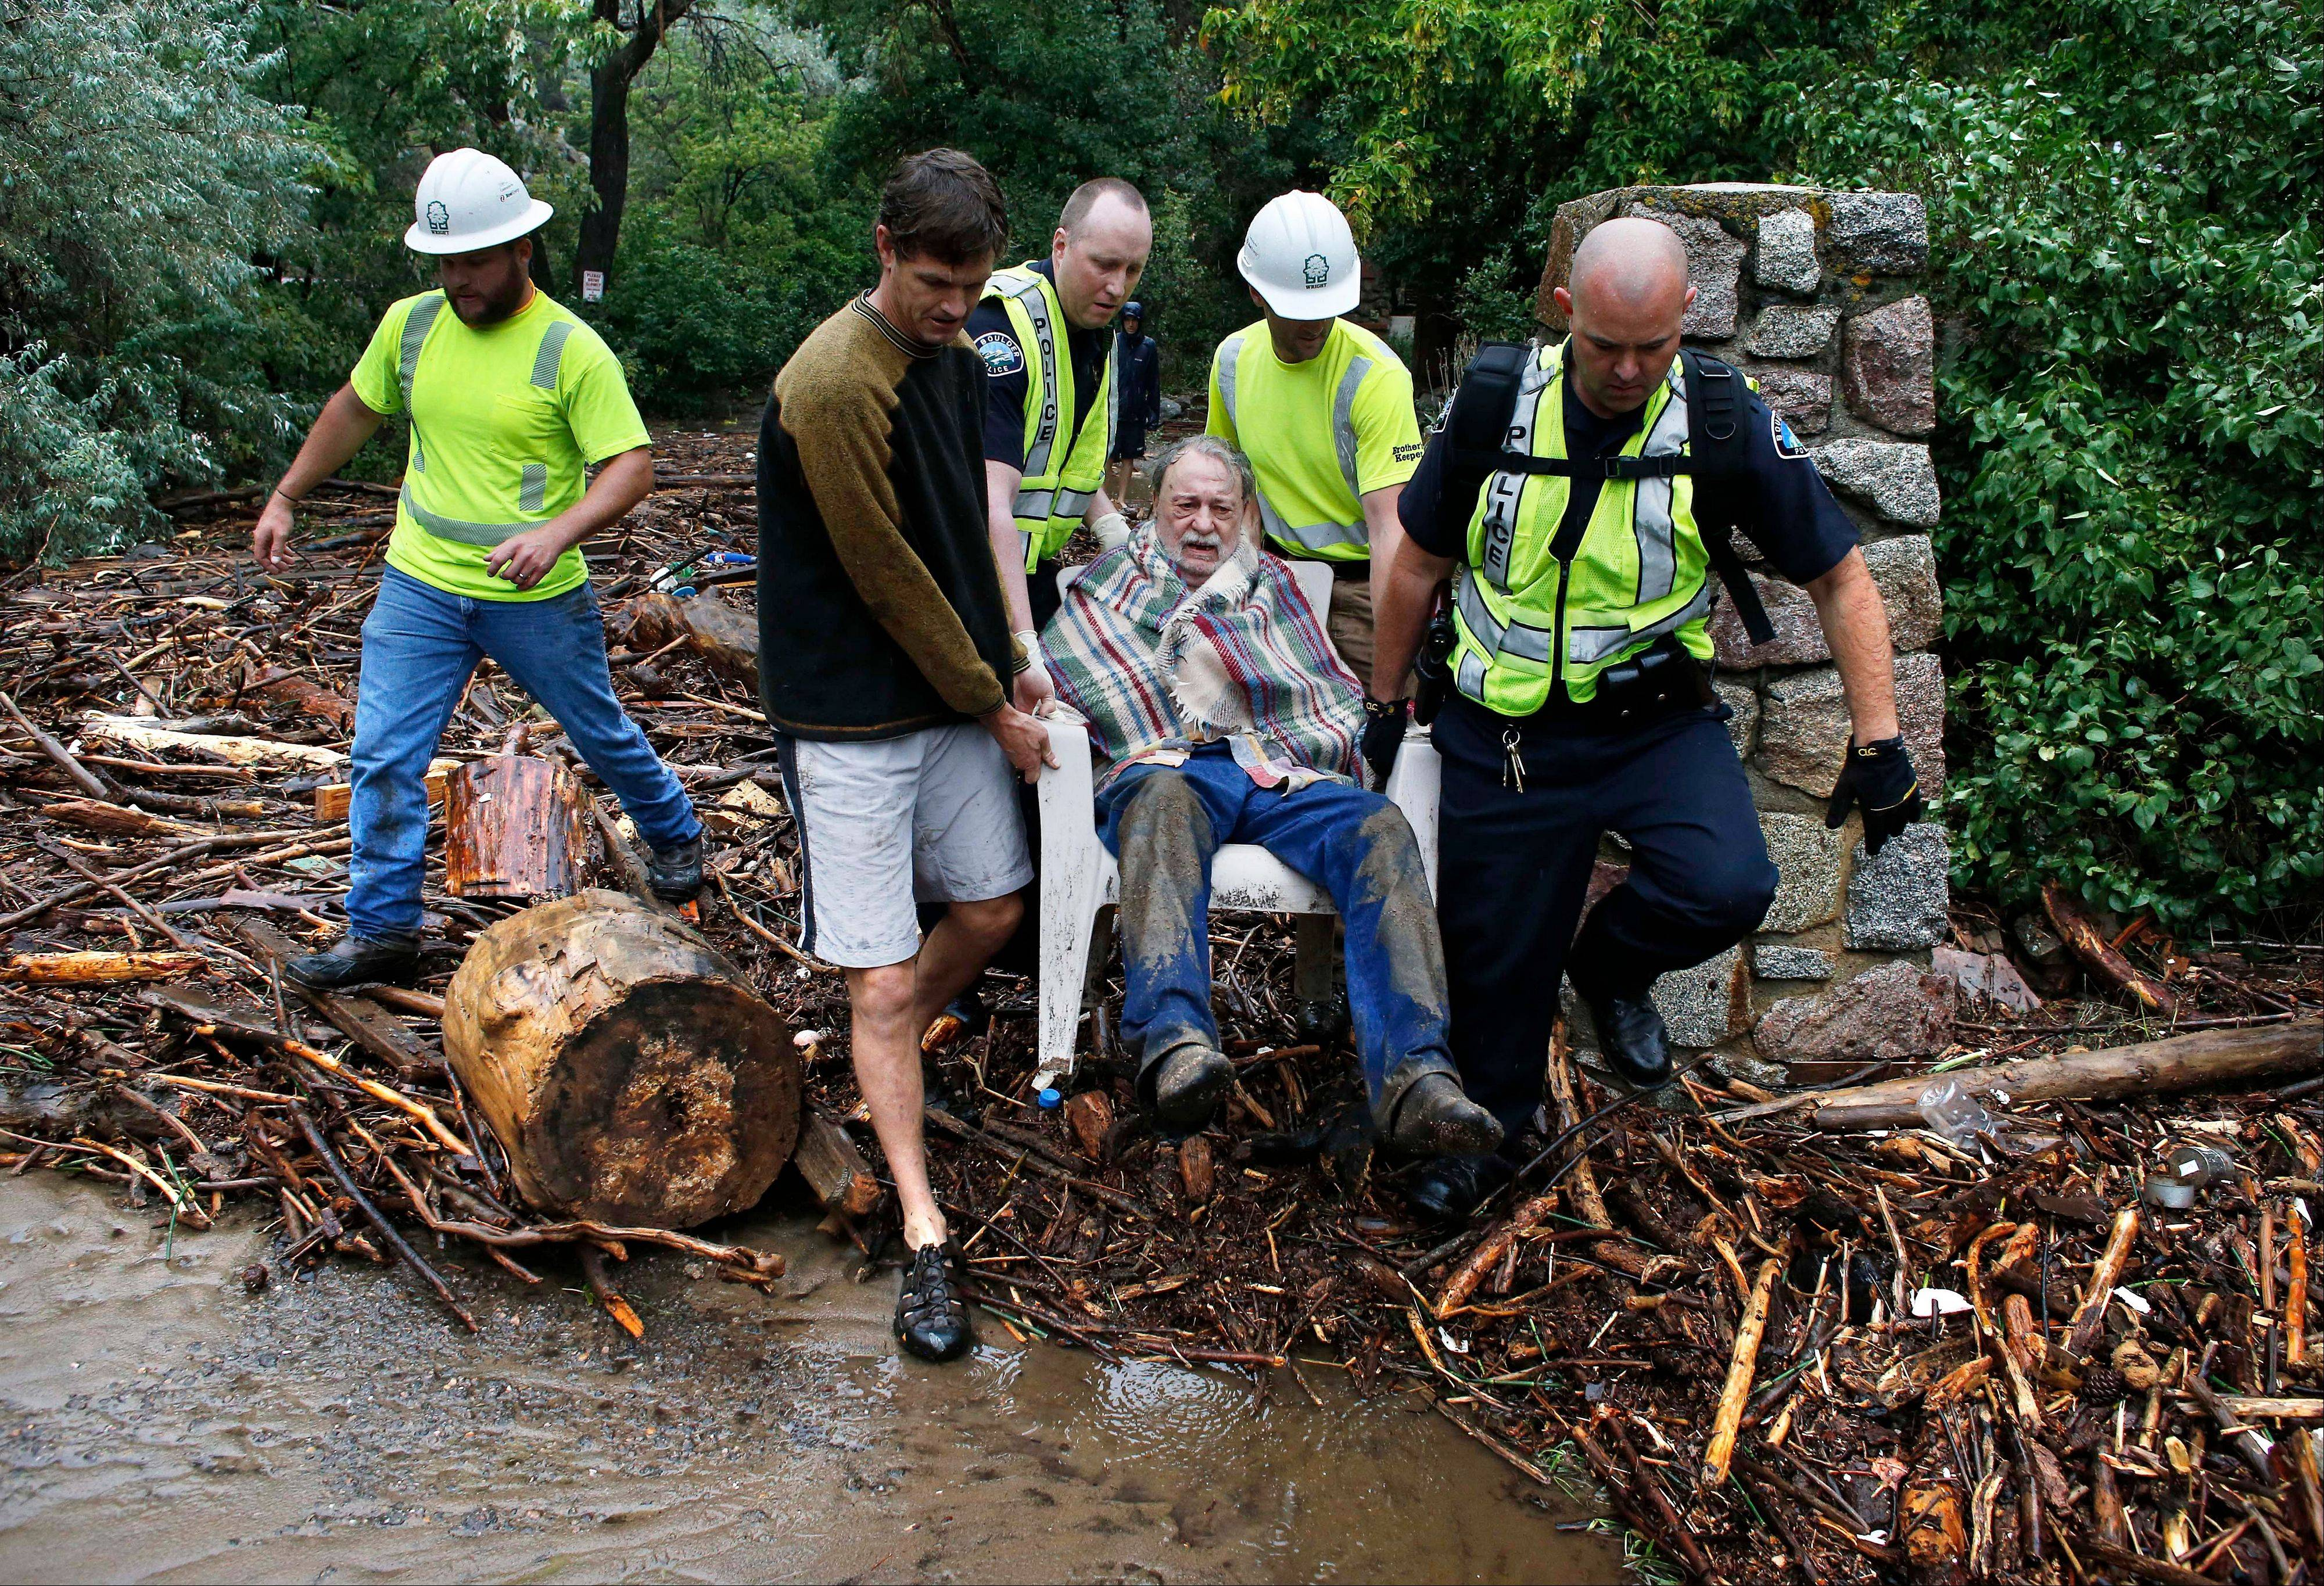 Will Pitner is rescued by emergency workers, and neighbor Jeff Writer, left, after a night trapped sheltering outside on high ground above his home as it filled with water from a surge of water, after days of record rain and flooding, at the base of Boulder Canyon, Colo., Friday Sept. 13, 2013 in Boulder. Flash flooding in Colorado has left at least three people reportedly dead and the widespread high waters have hampered emergency workers' access to affected communities as heavy rains hammered northern Colorado.